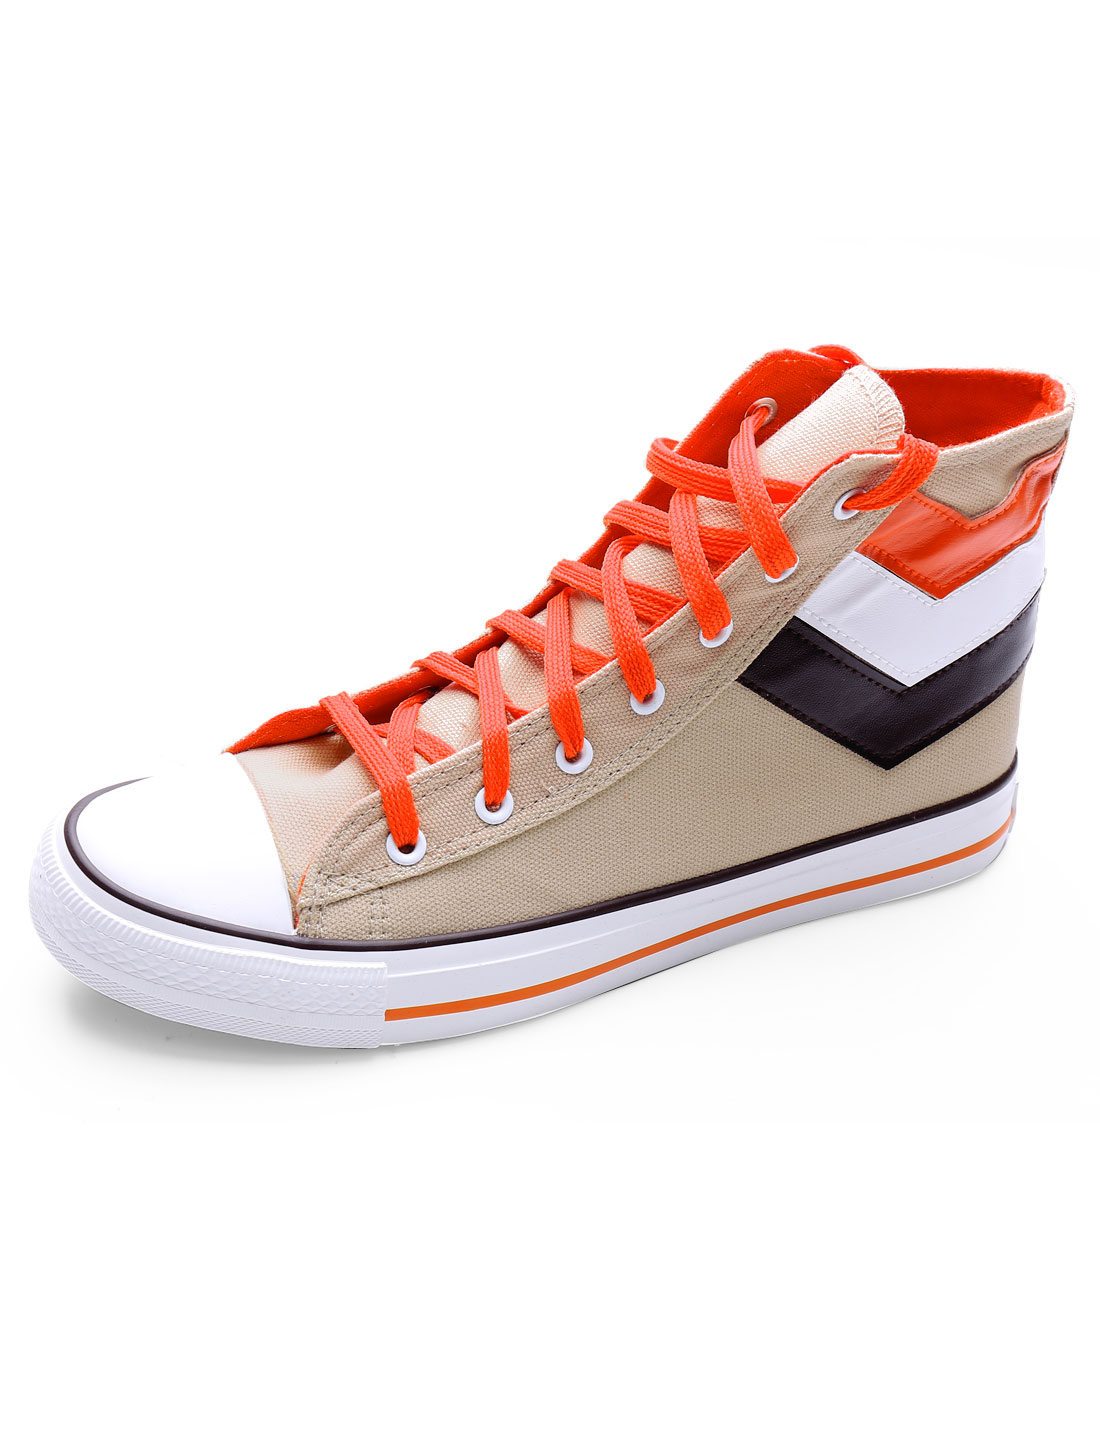 Men High Cut Round Toe Lace Up Color Block Canvas Shoes